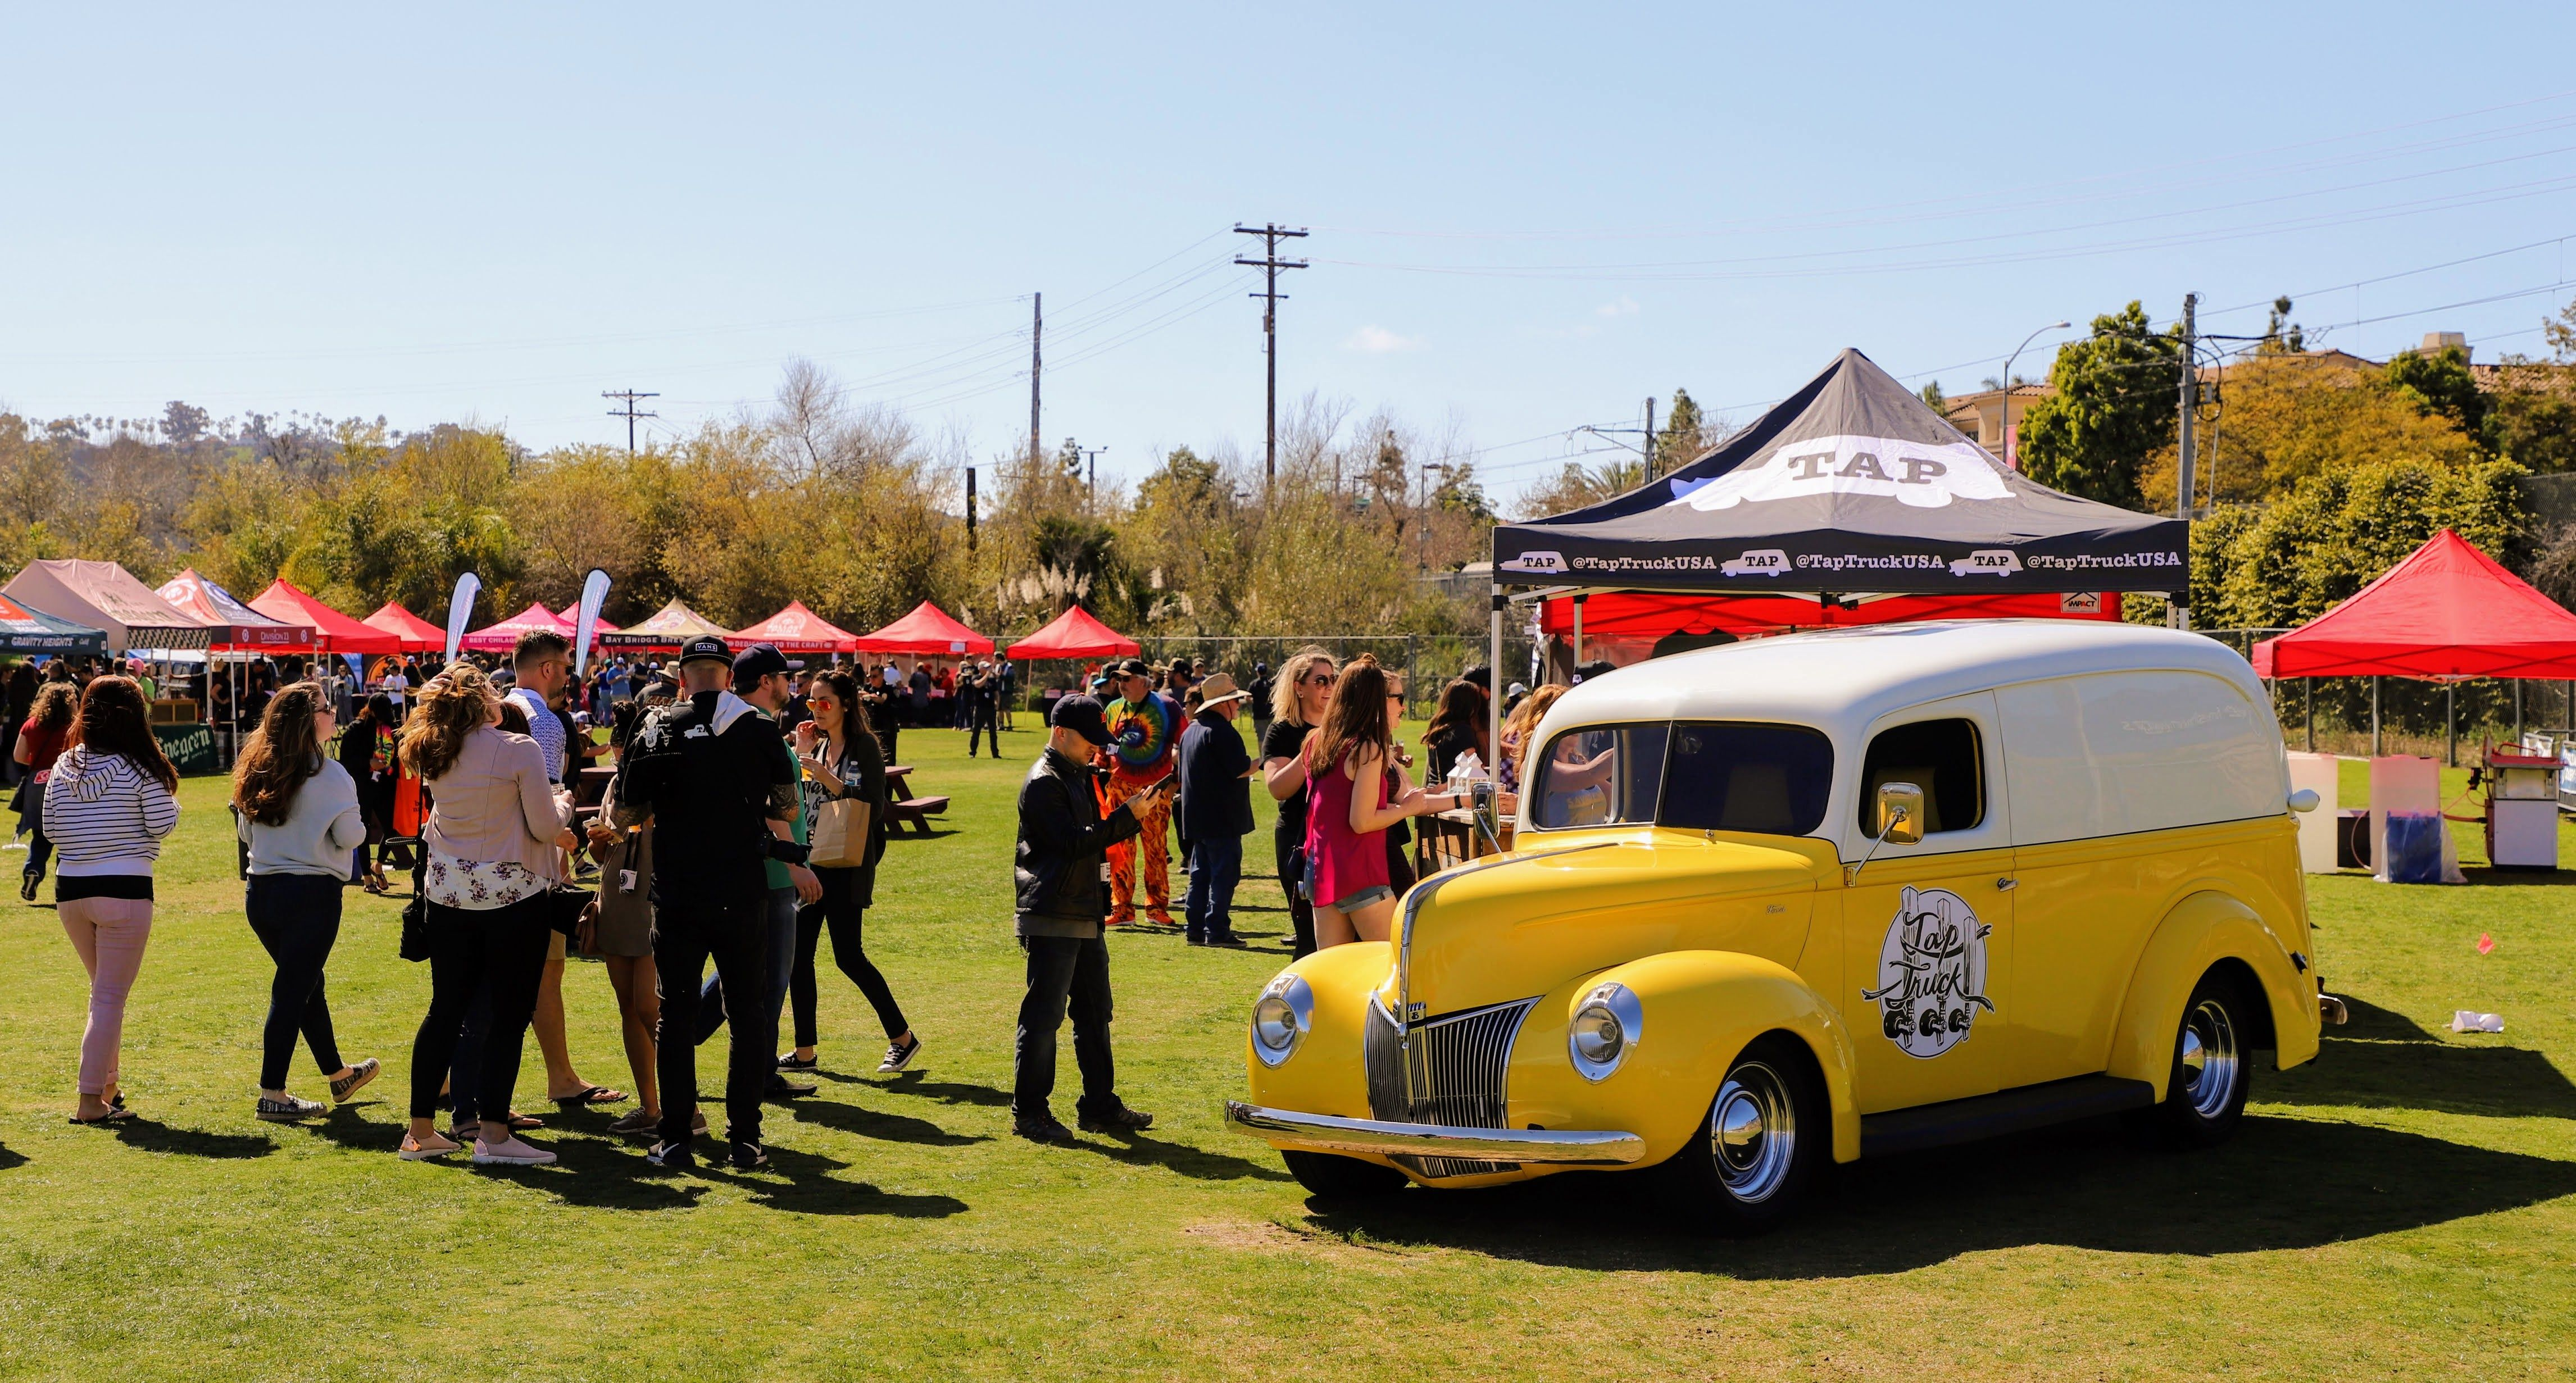 Mobile Bar Your Event With Tap Truck In 2020 Bar Catering Beer Truck Mobile Bar